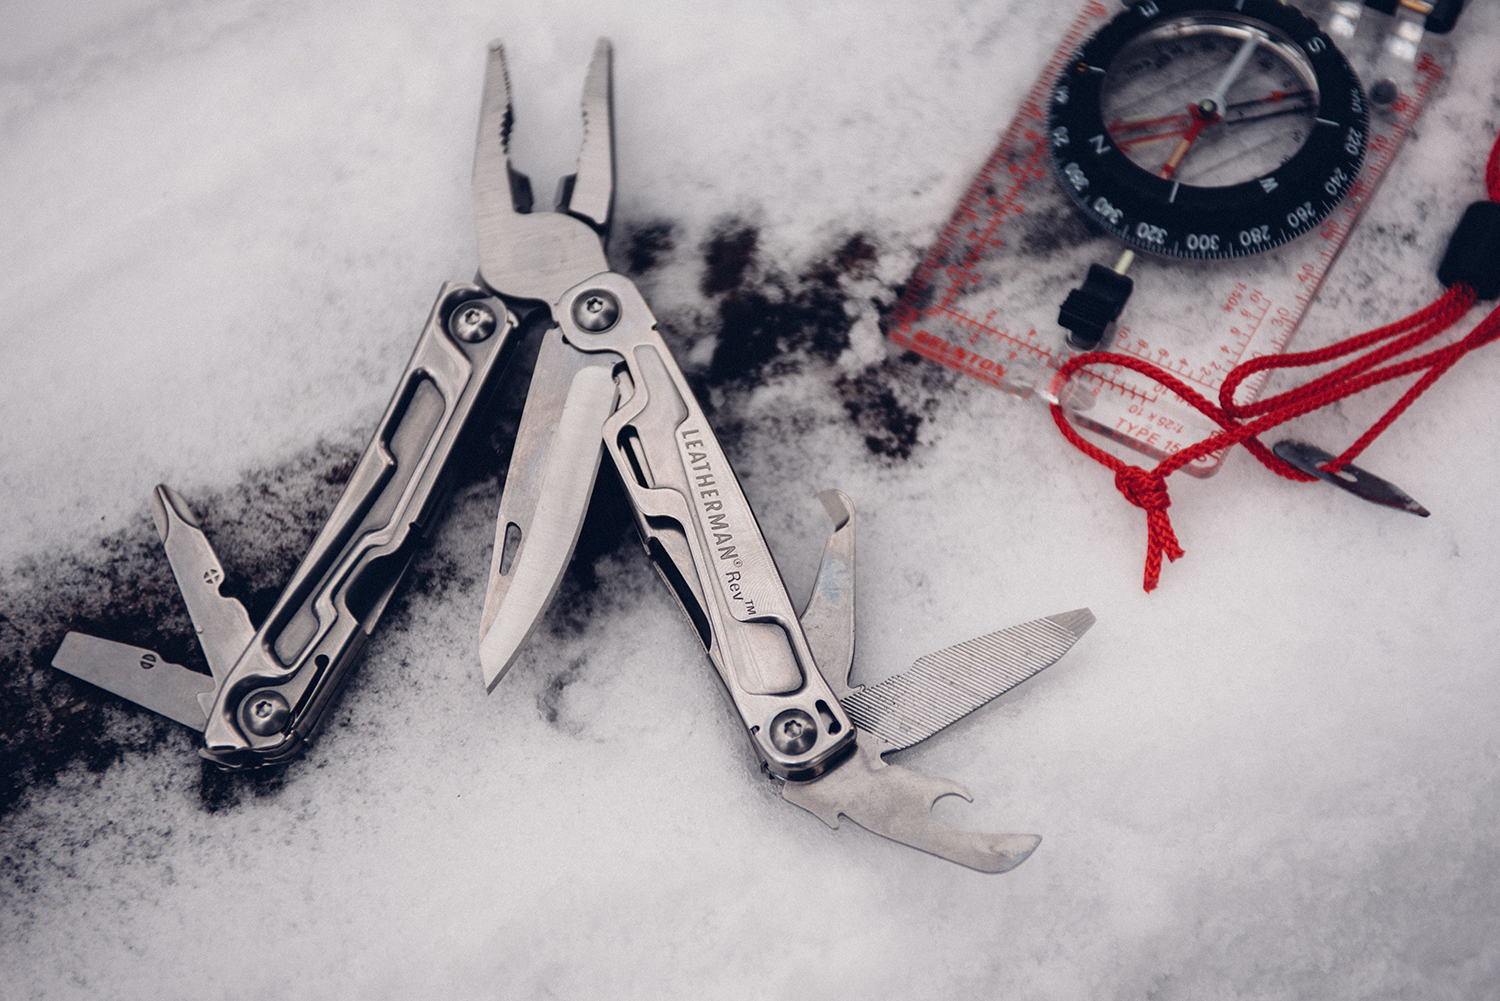 Multi-Tool in snow next to compass.